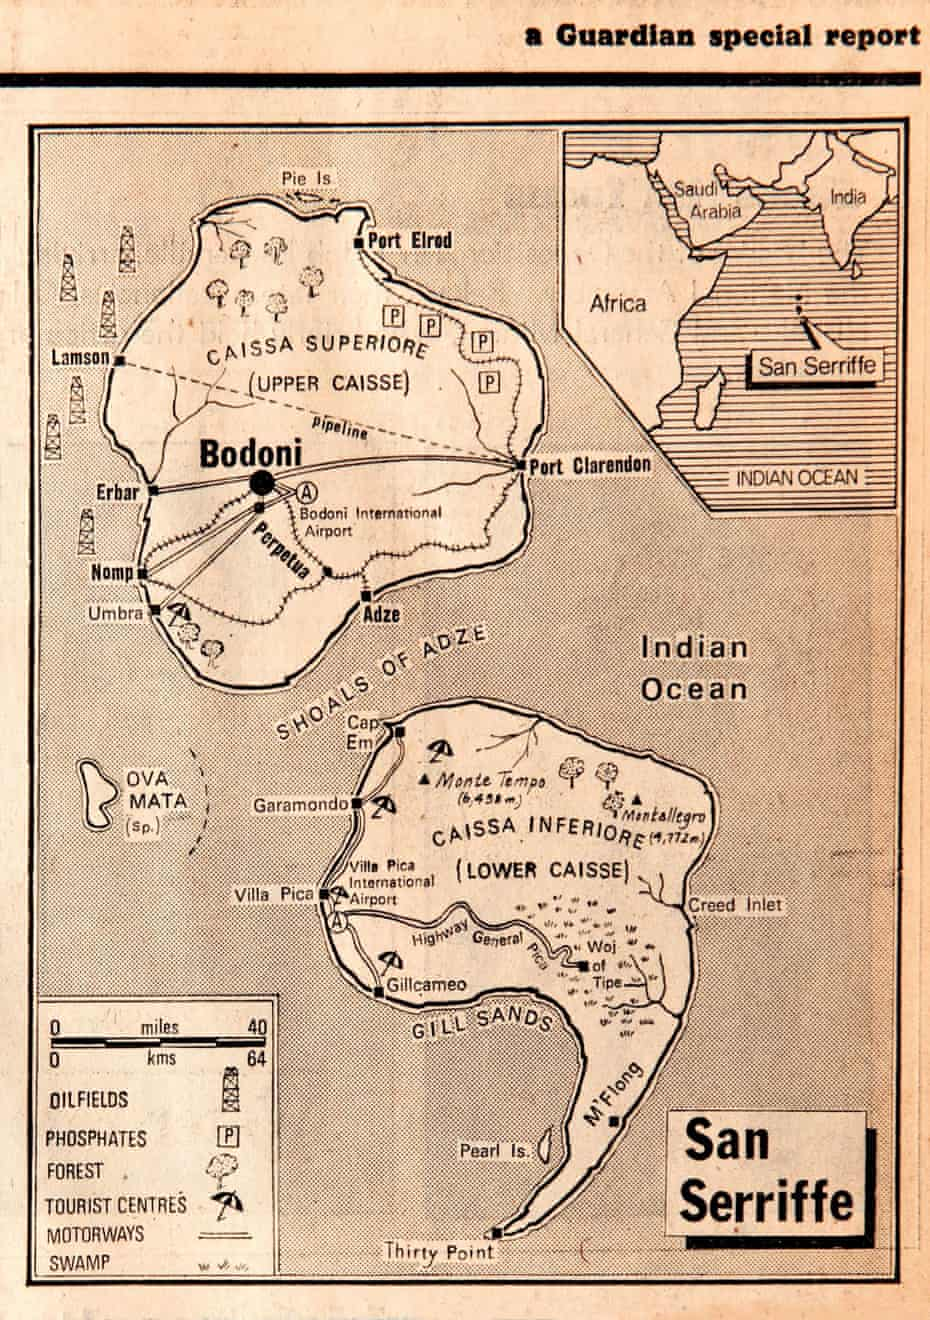 Map of San Serriffe, from the Guardian special report